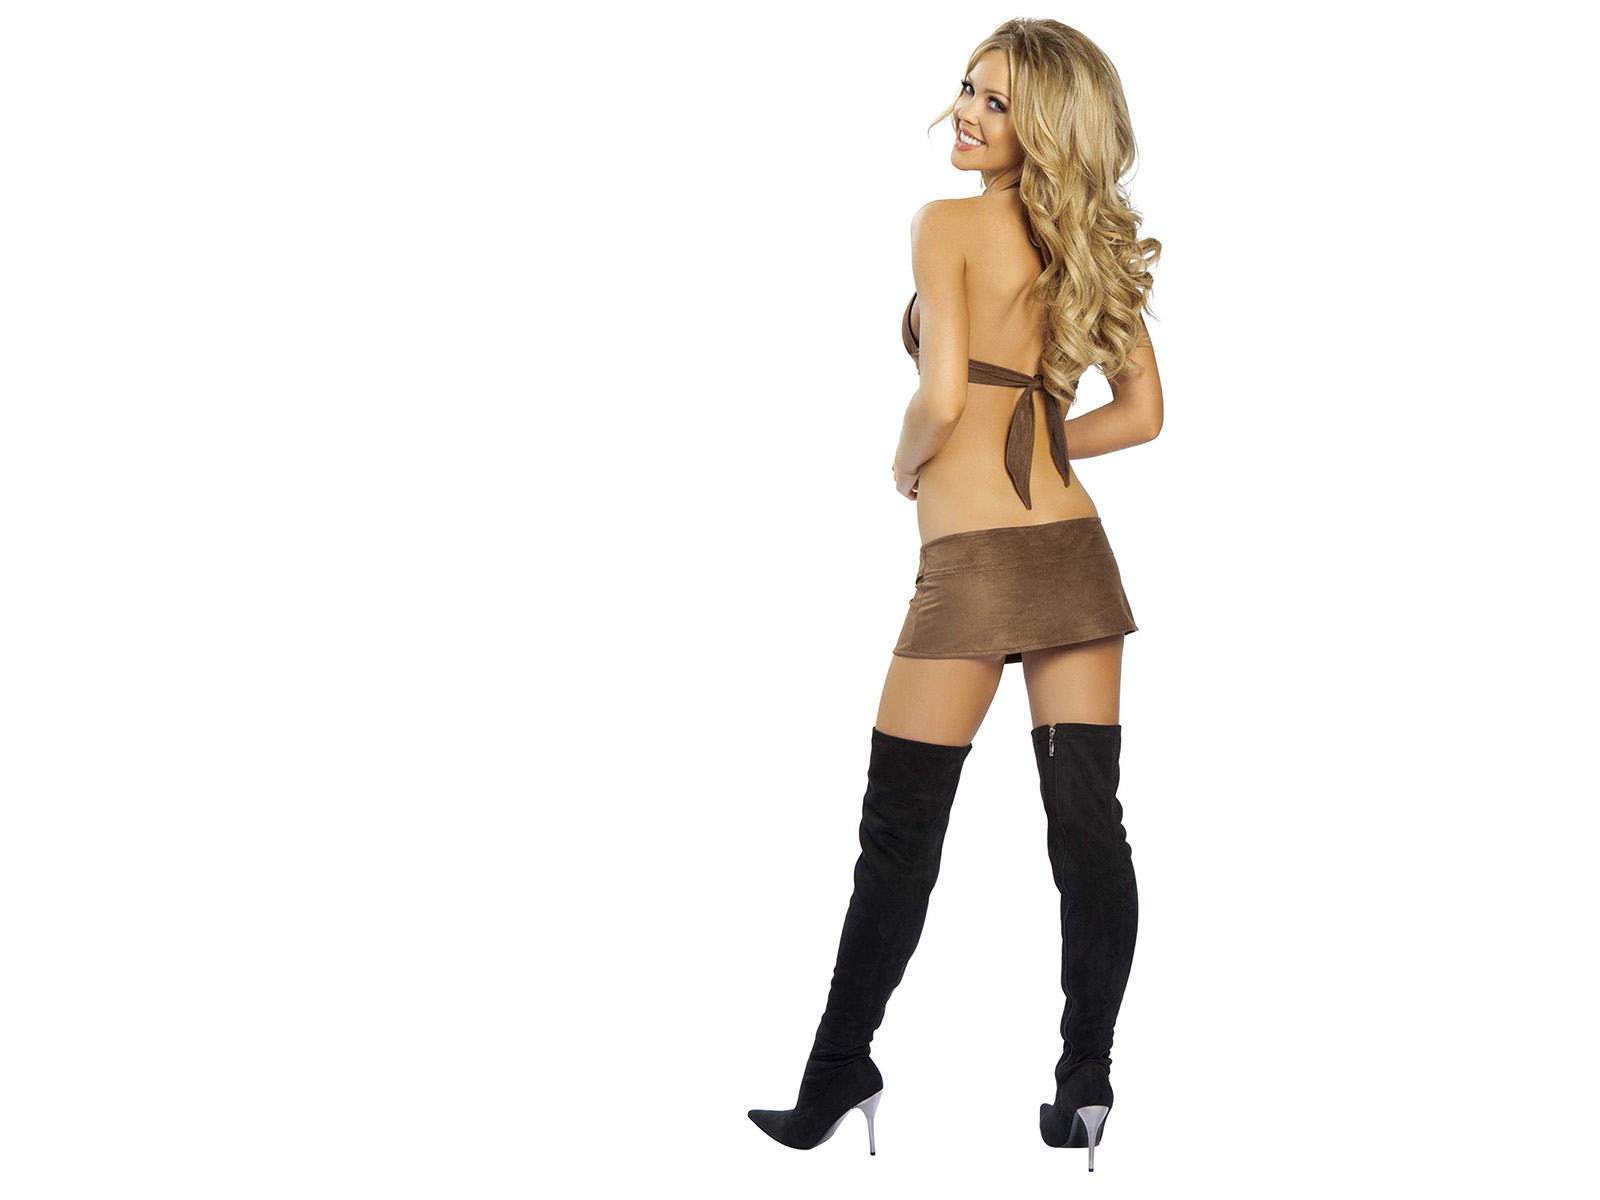 Tan,bikini Top Mini Skirt Long Dark Boots